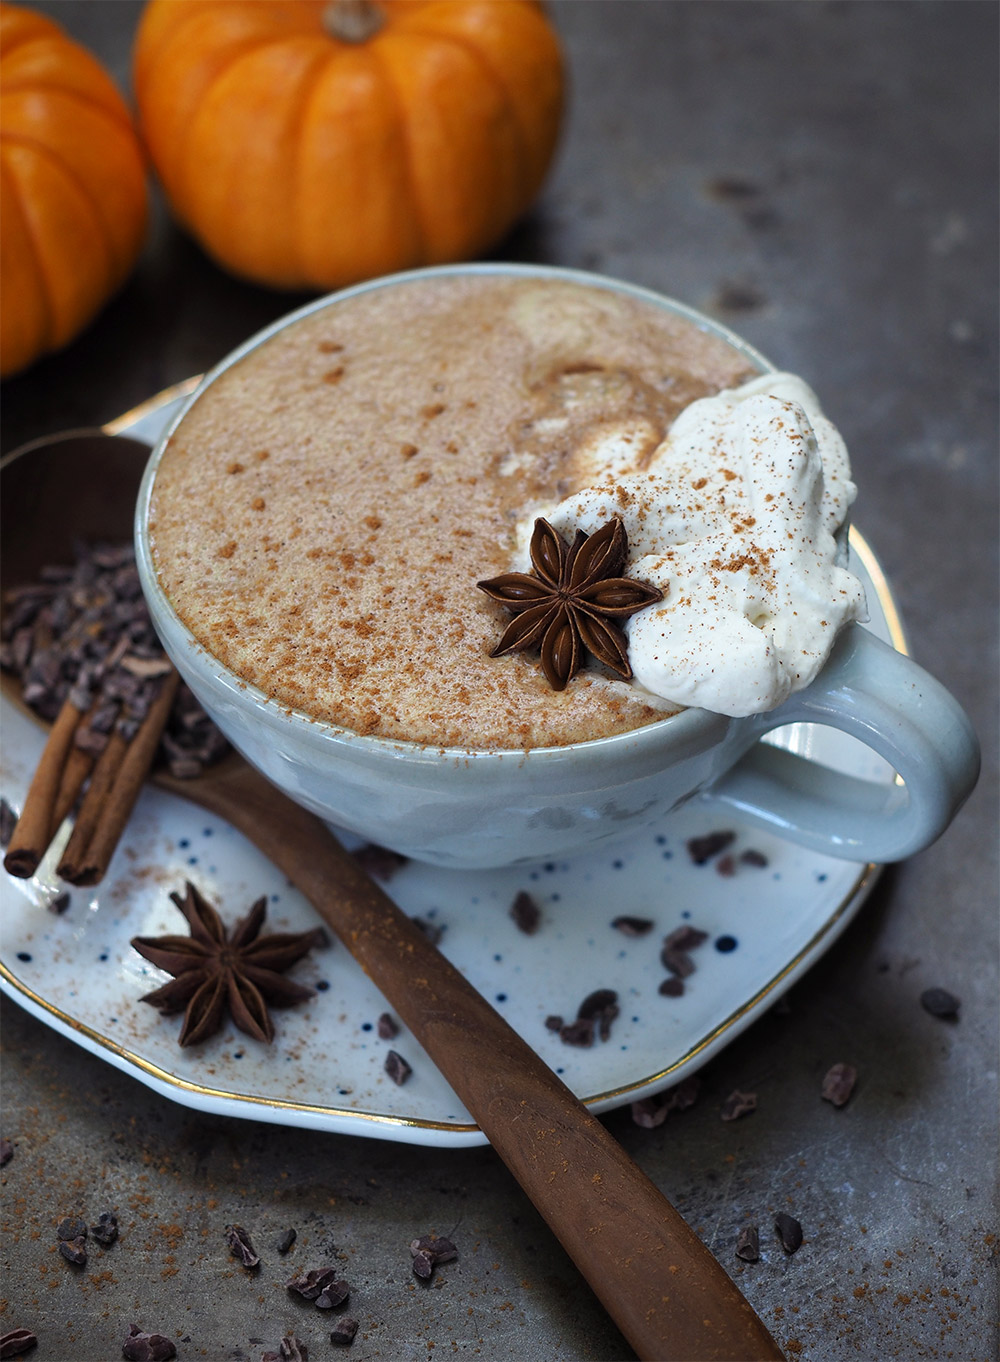 This unique twist on a chai tea latte adds in pumpkin puree and cacao powder for a super indulgent and cozy fall breakfast drink.